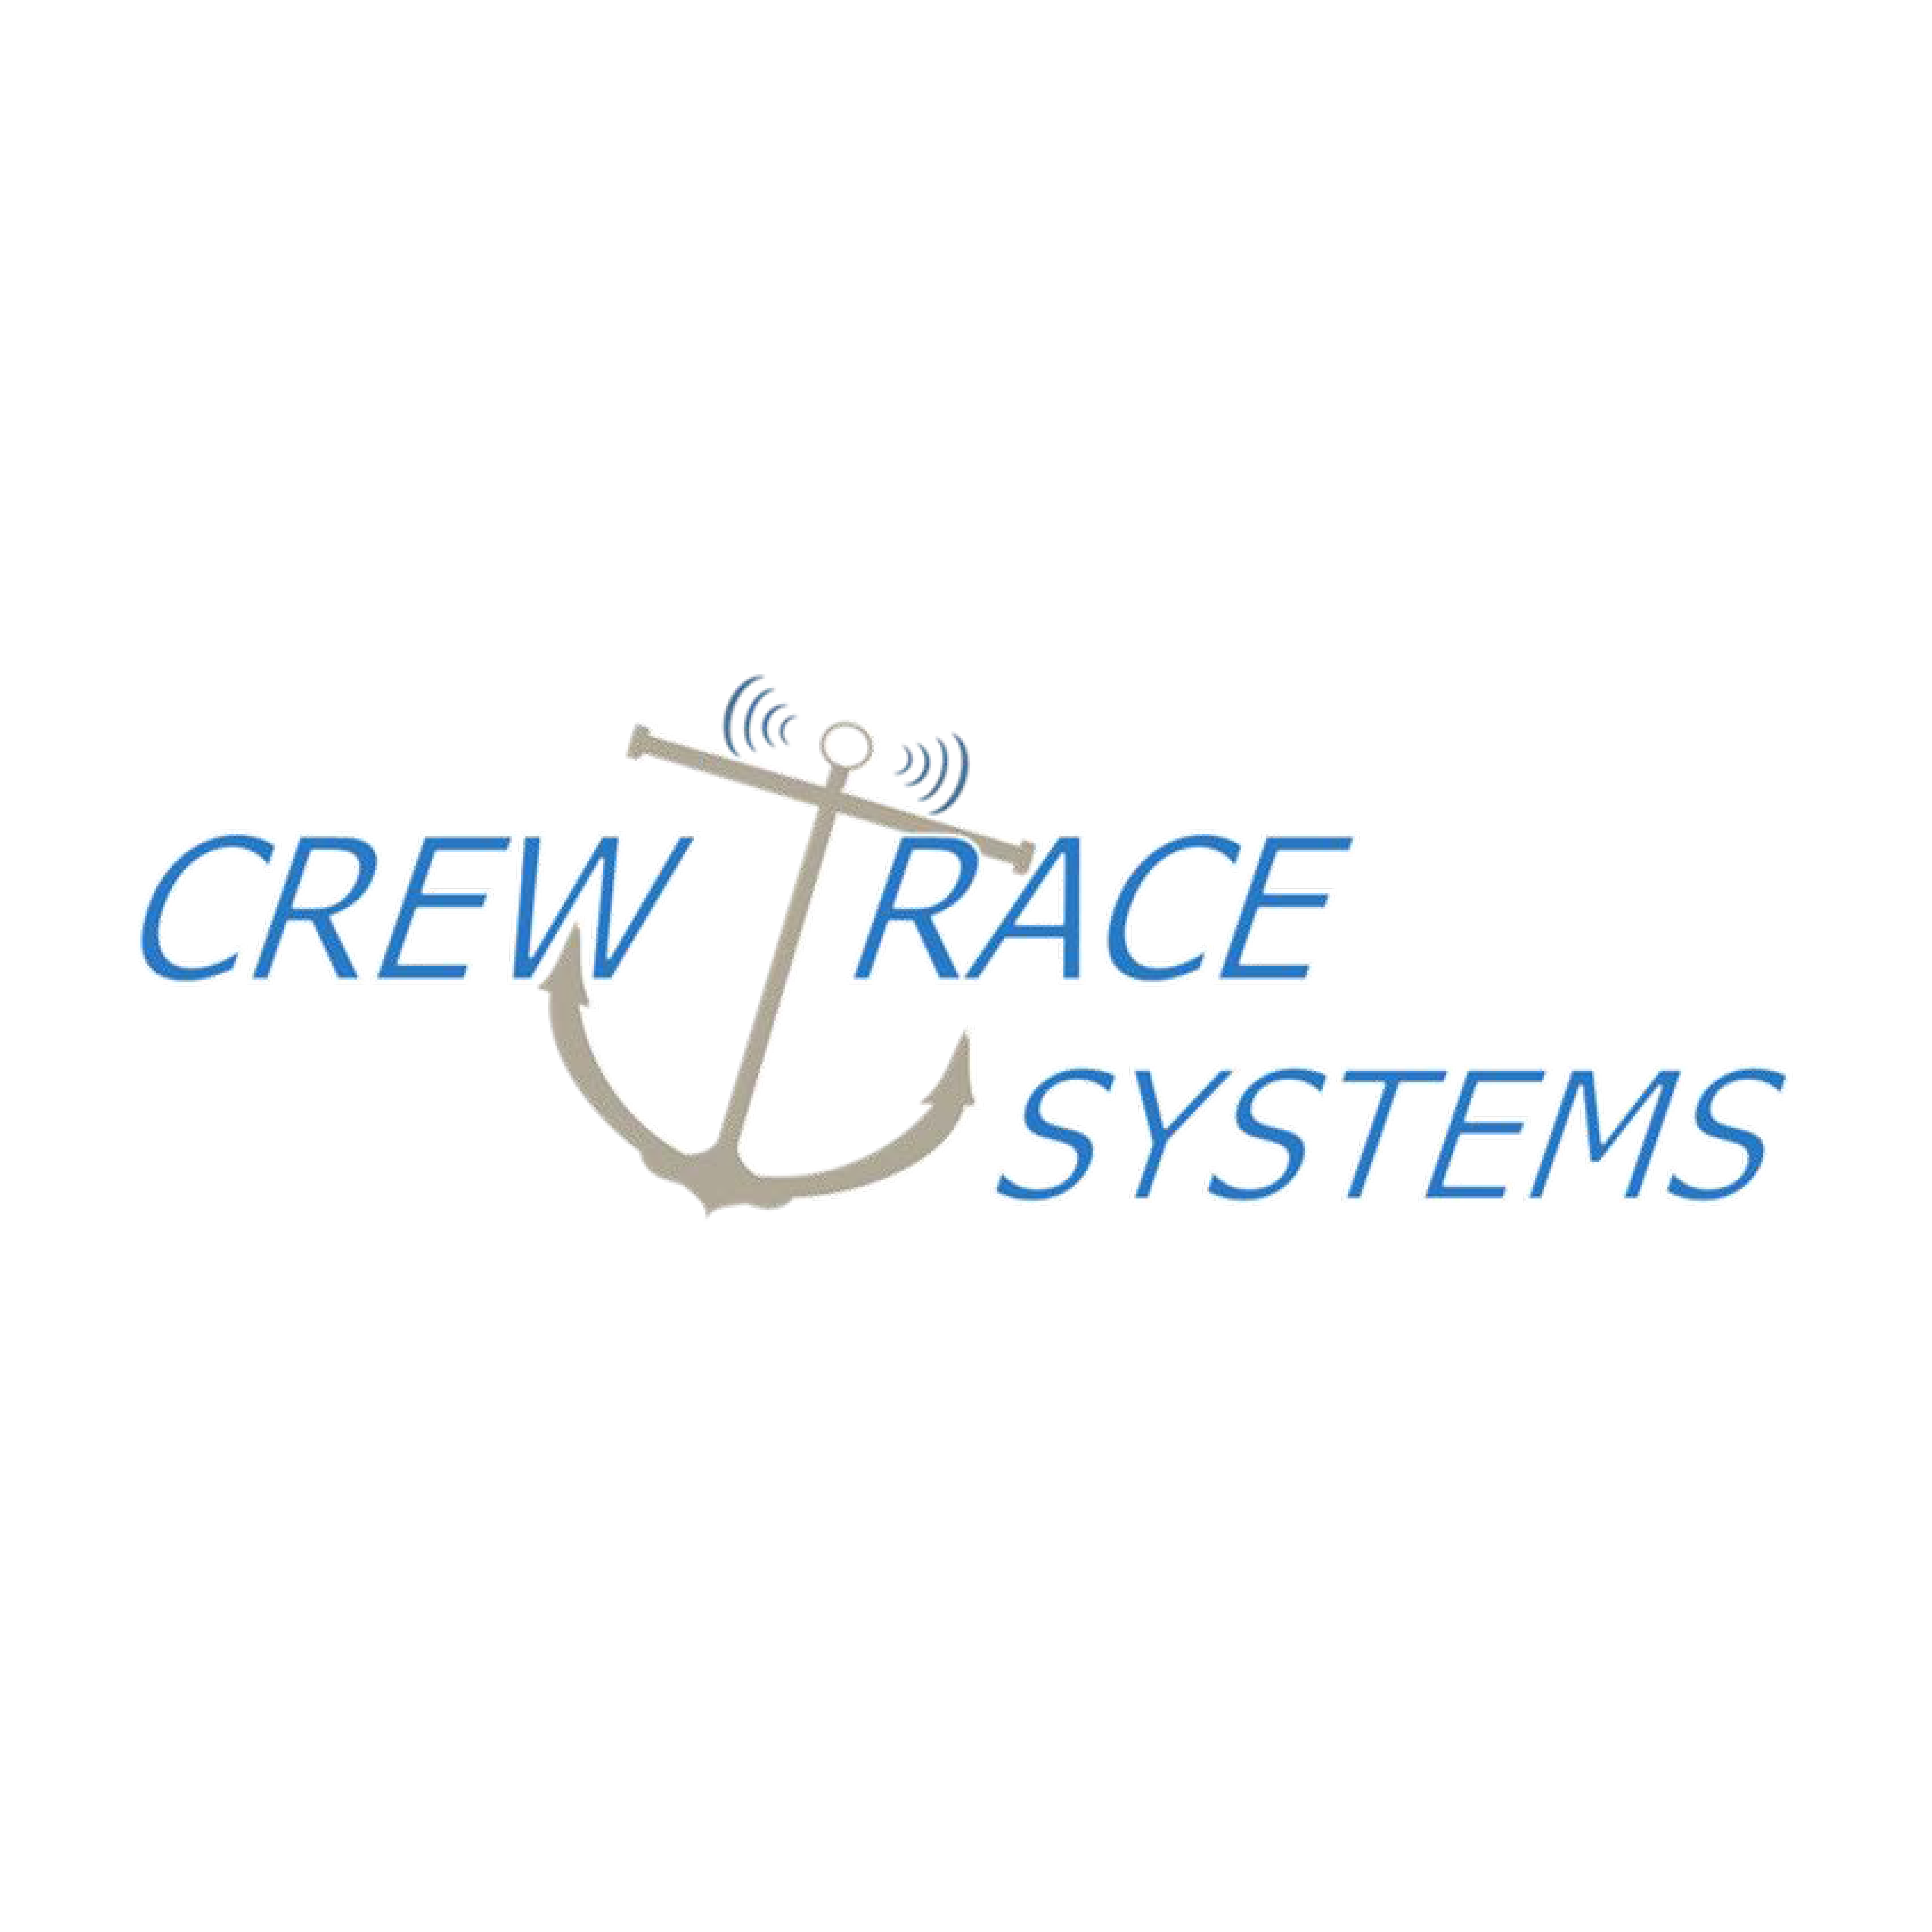 Crew Trace Systems